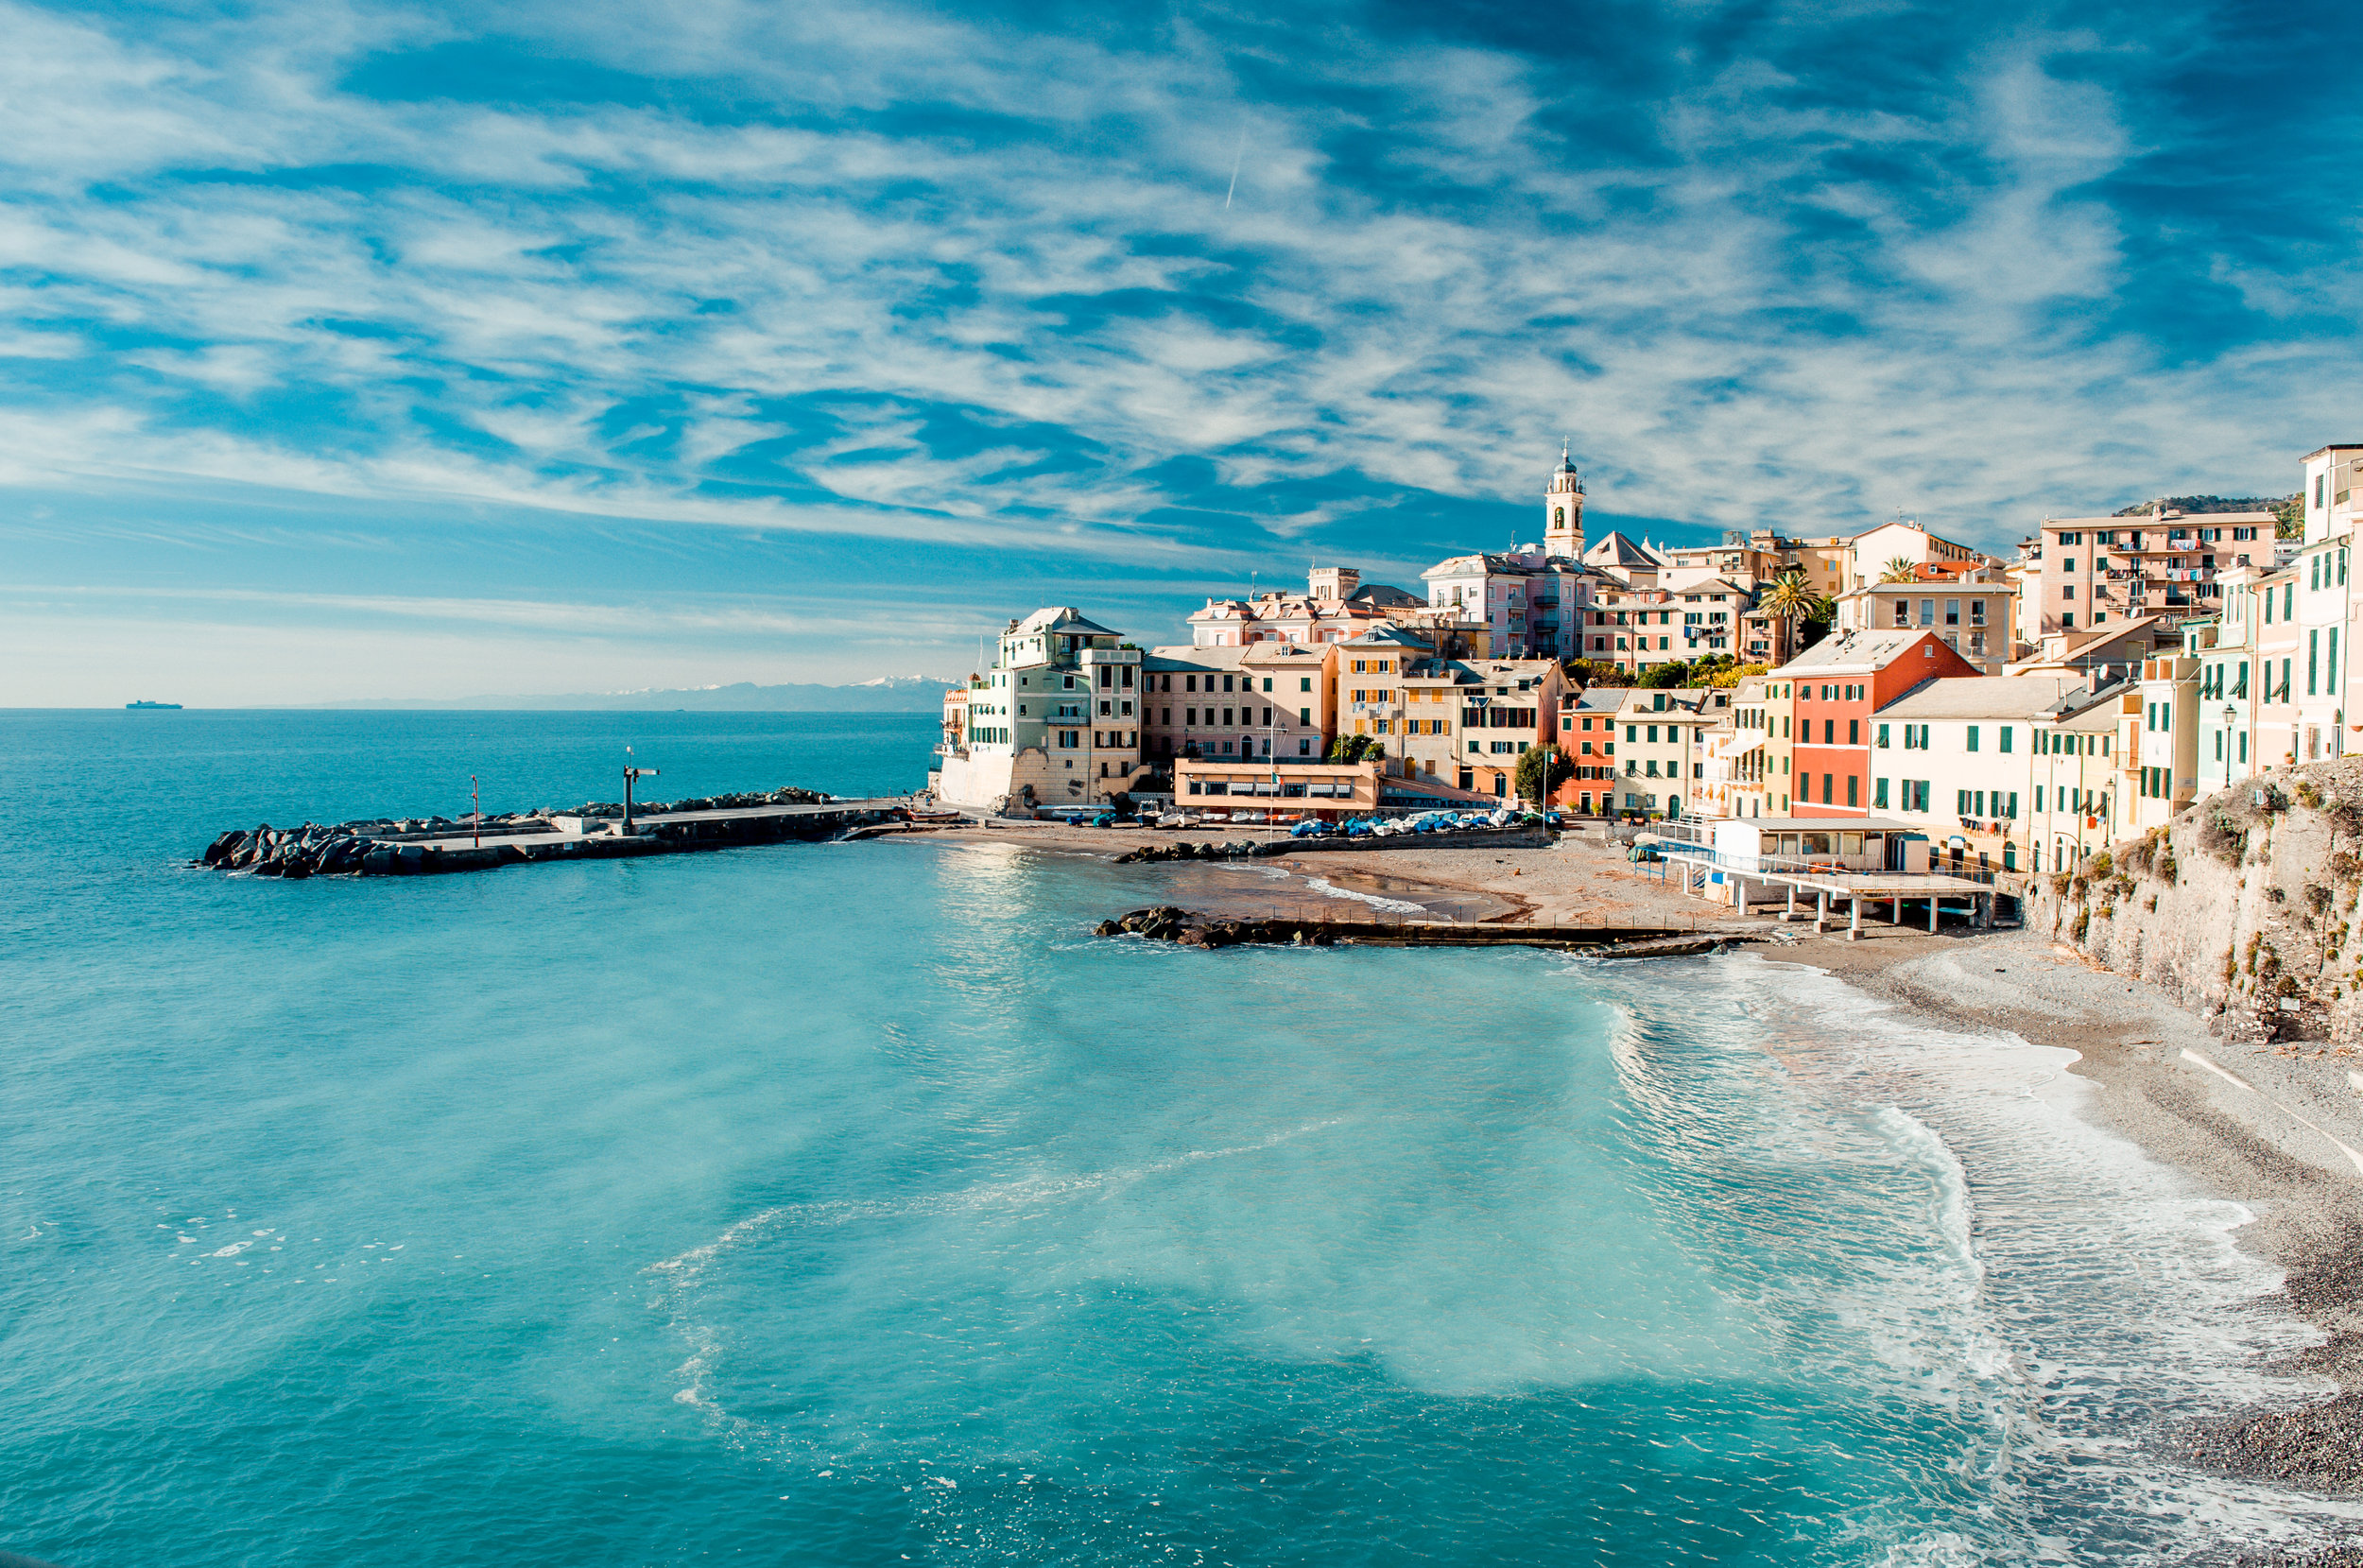 View of Bogliasco. Bogliasco is a ancient fishing village in Ita